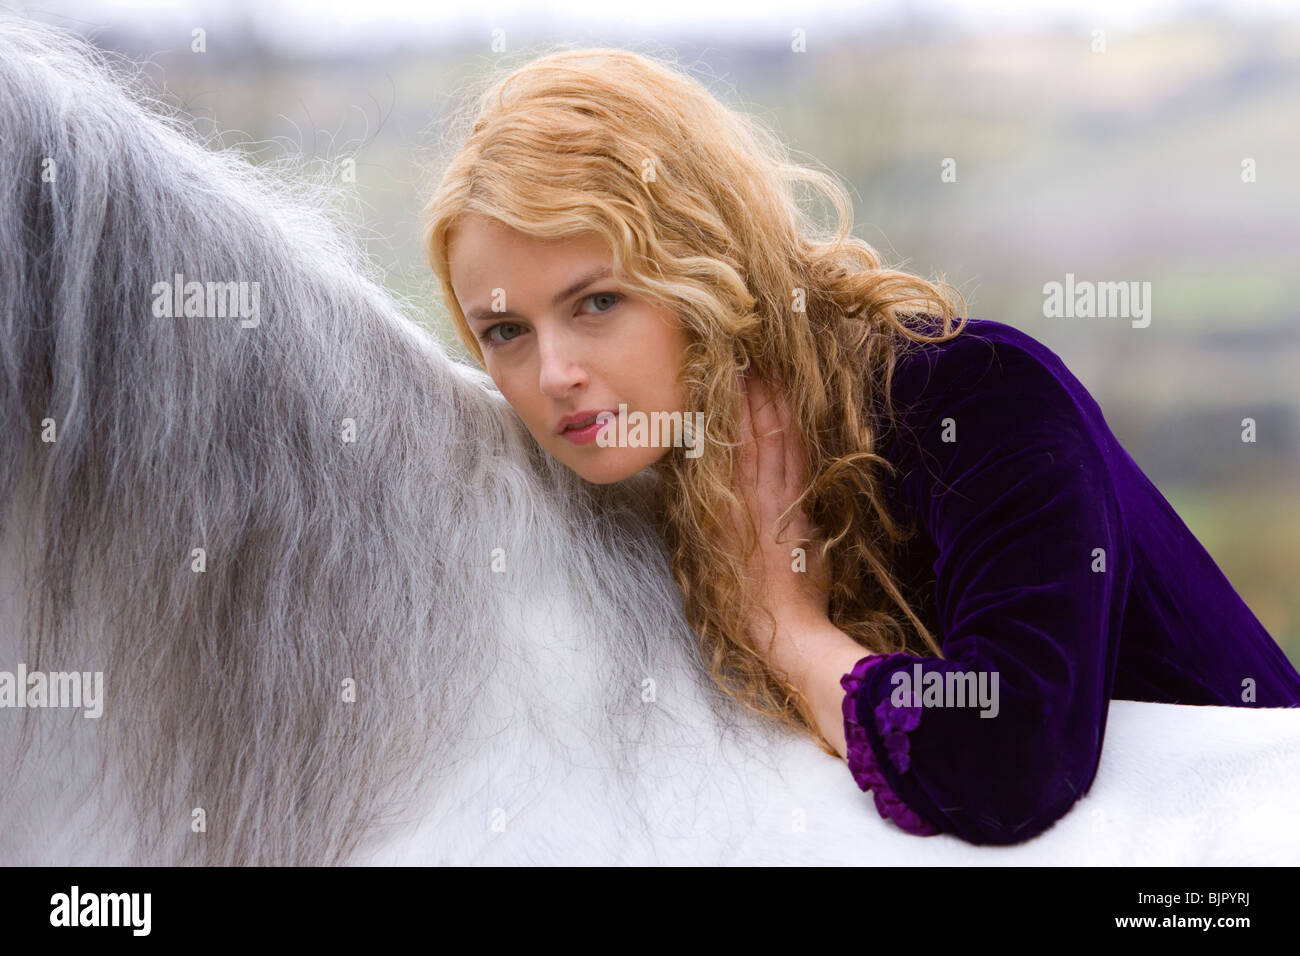 Girl with horse 2 - Stock Image